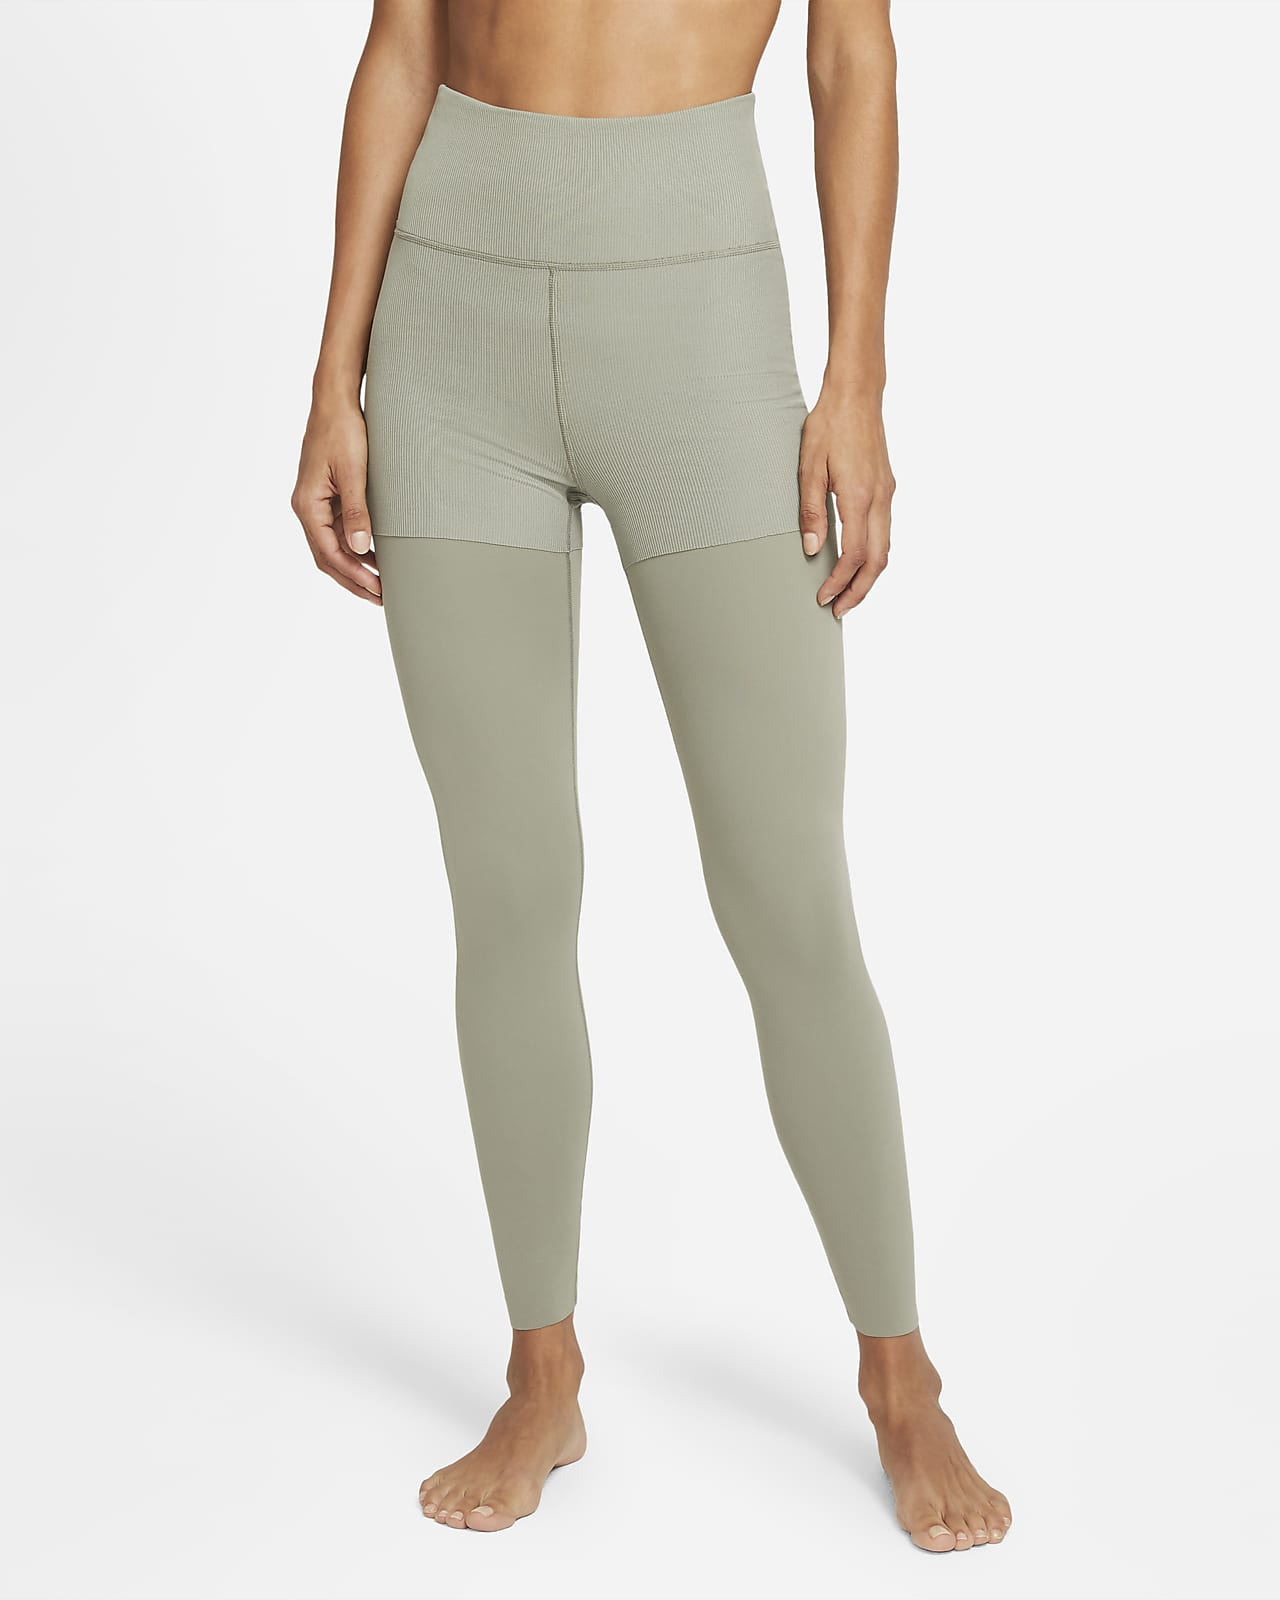 Nike Yoga Luxe Layered Women's 7/8 Leggings